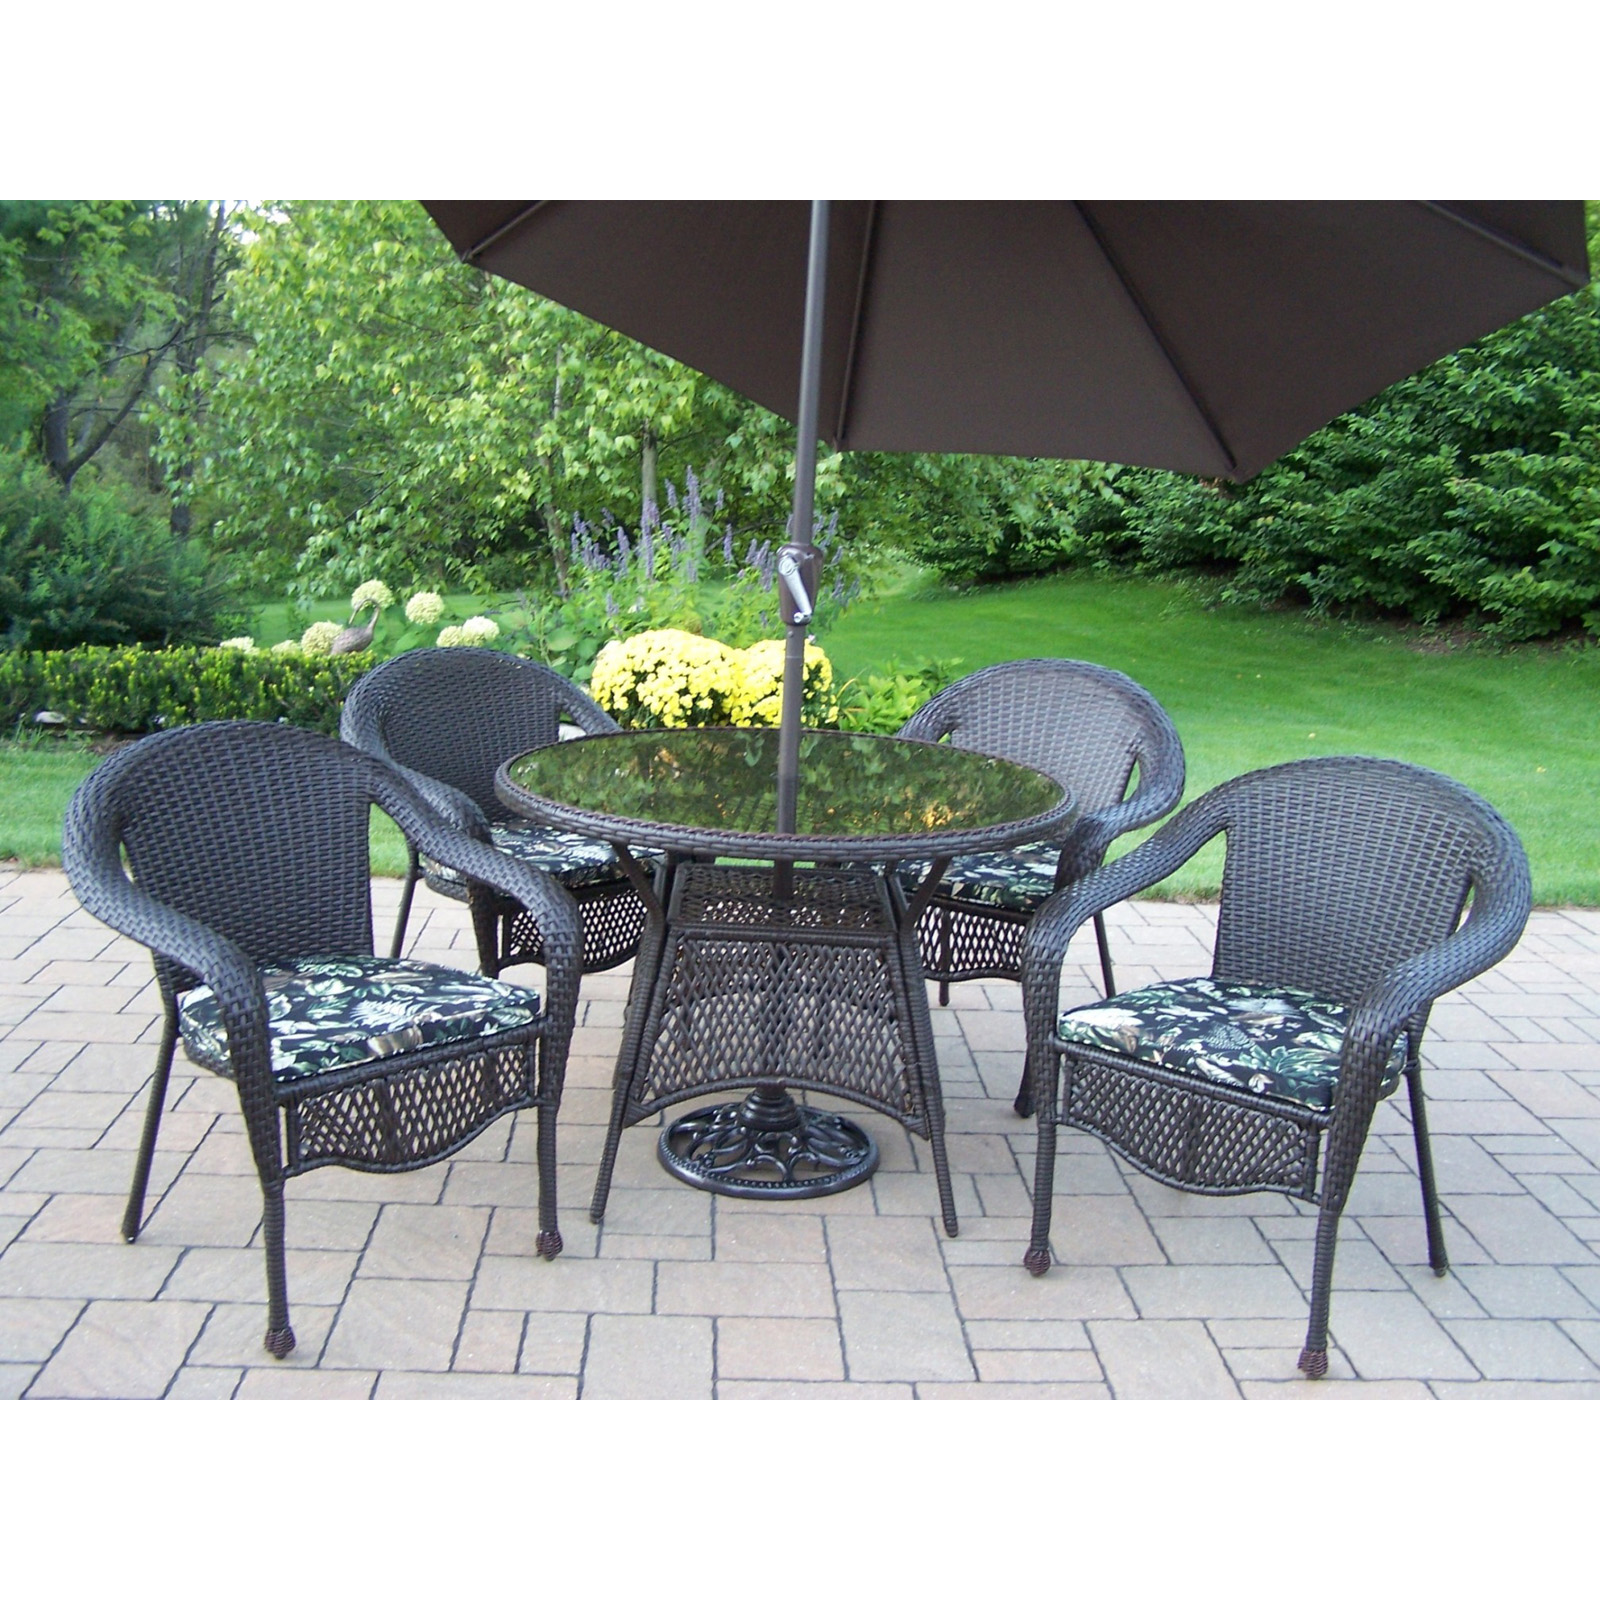 Oakland living elite all weather wicker patio dining set for Patio furniture sets with umbrella